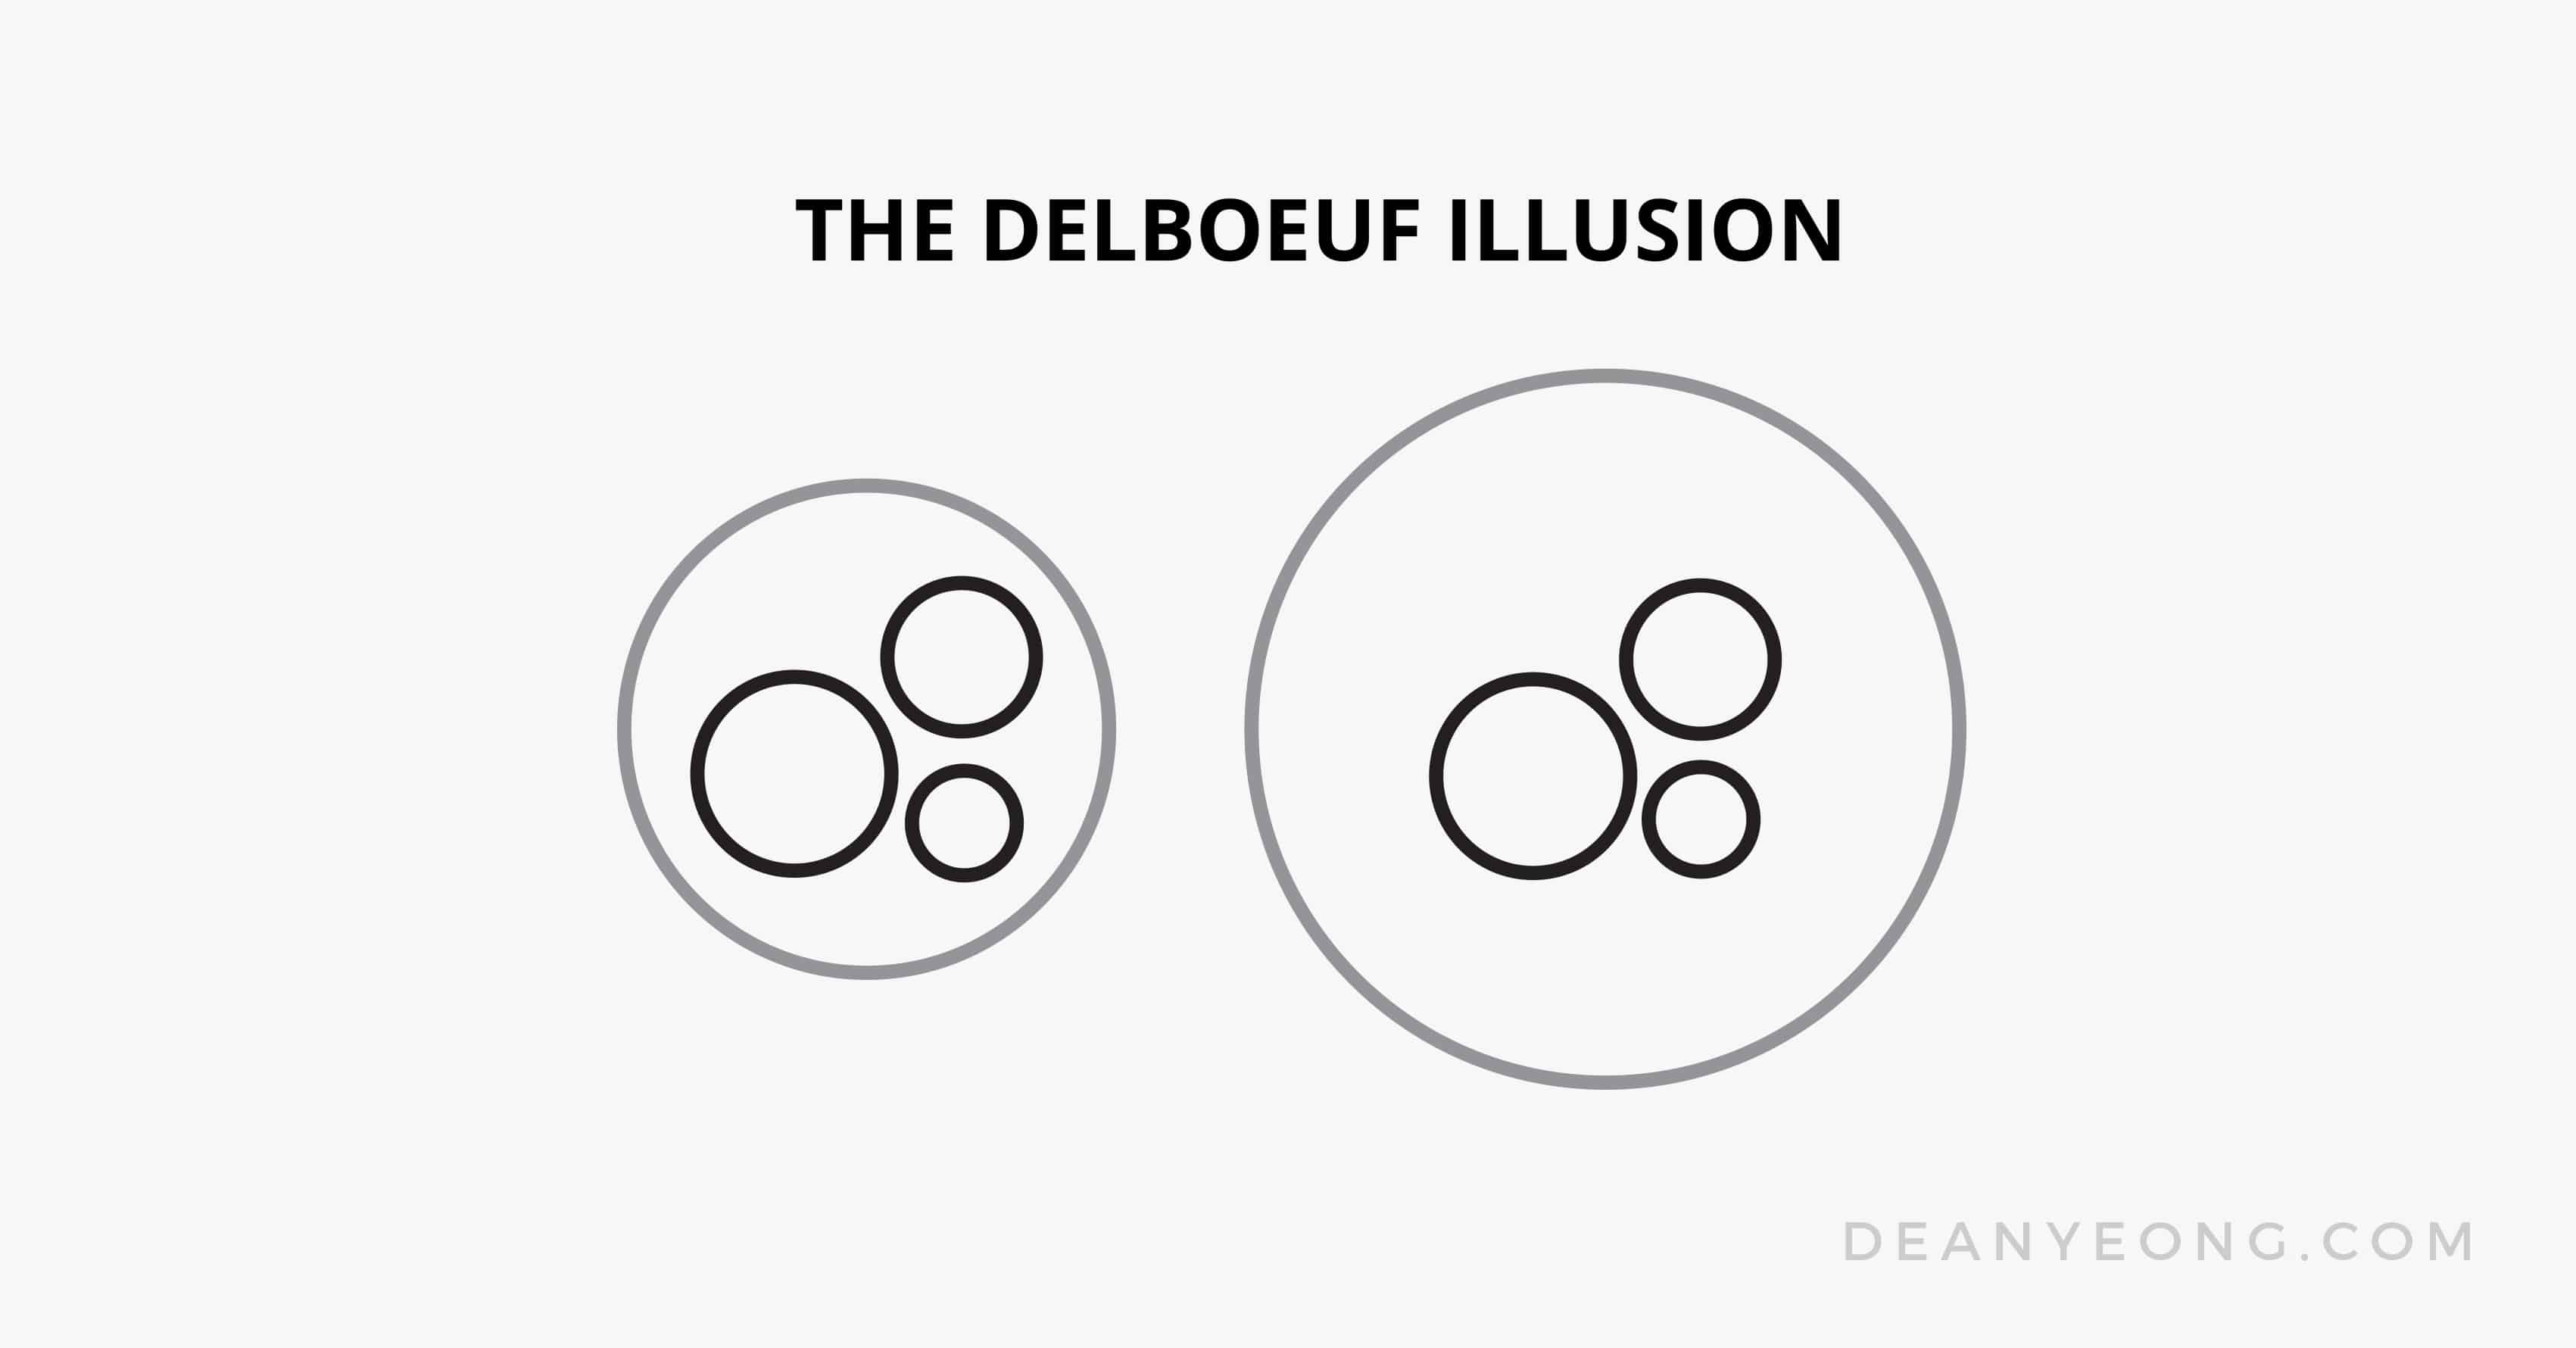 The Delboeuf Illusion